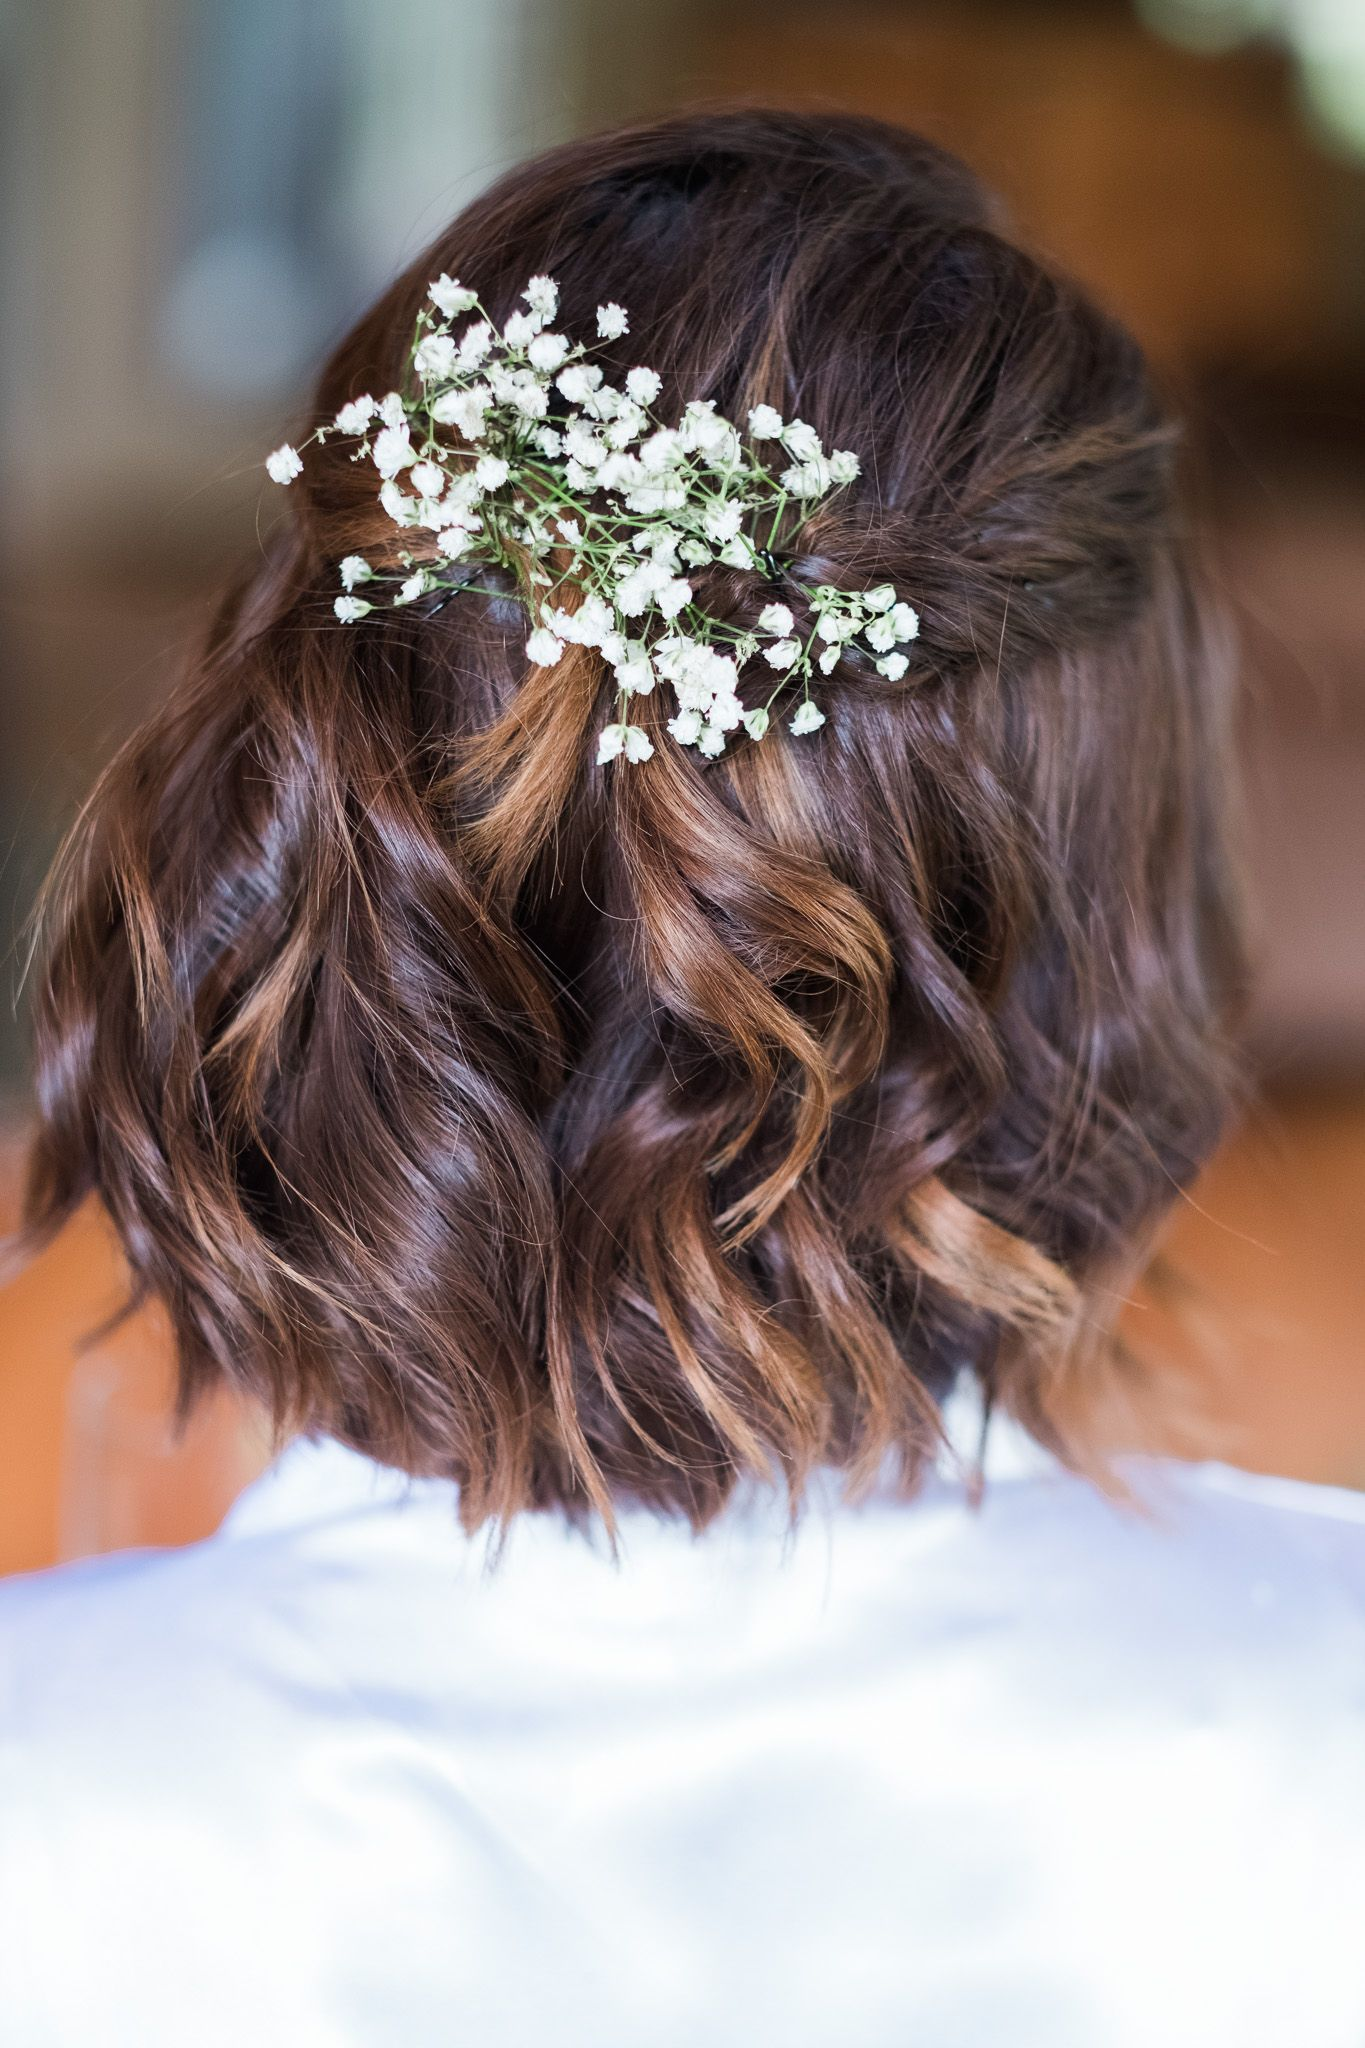 Downstyle Bridal Hair With Babies Breath Short Wedding Hair Short Bridal Hair Bridal Hairstyles With Braids